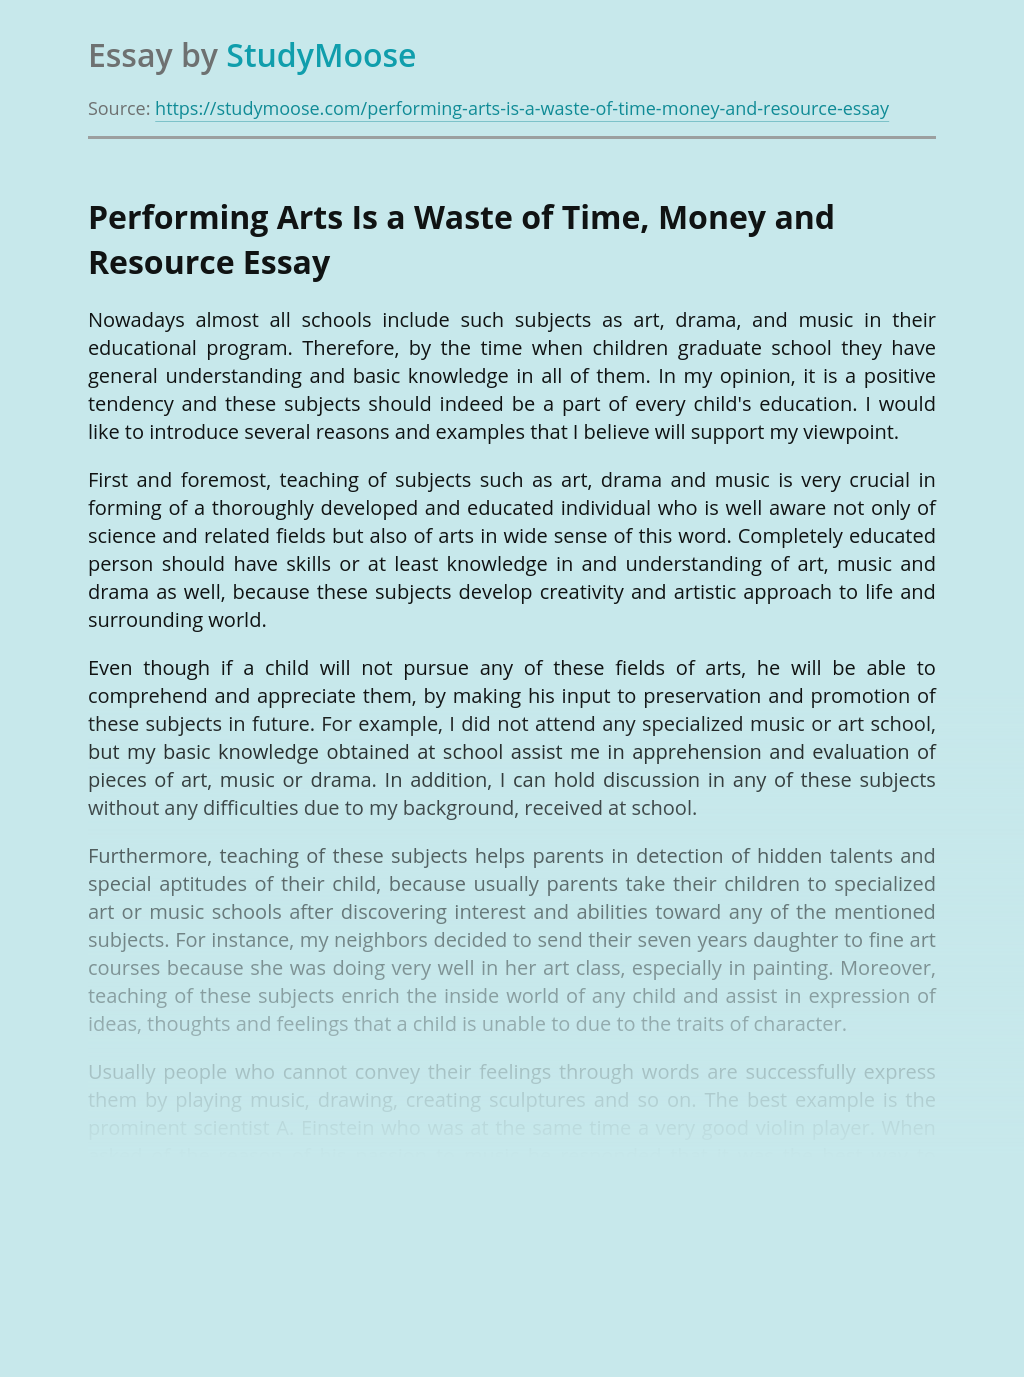 Performing Arts Is a Waste of Time, Money and Resource